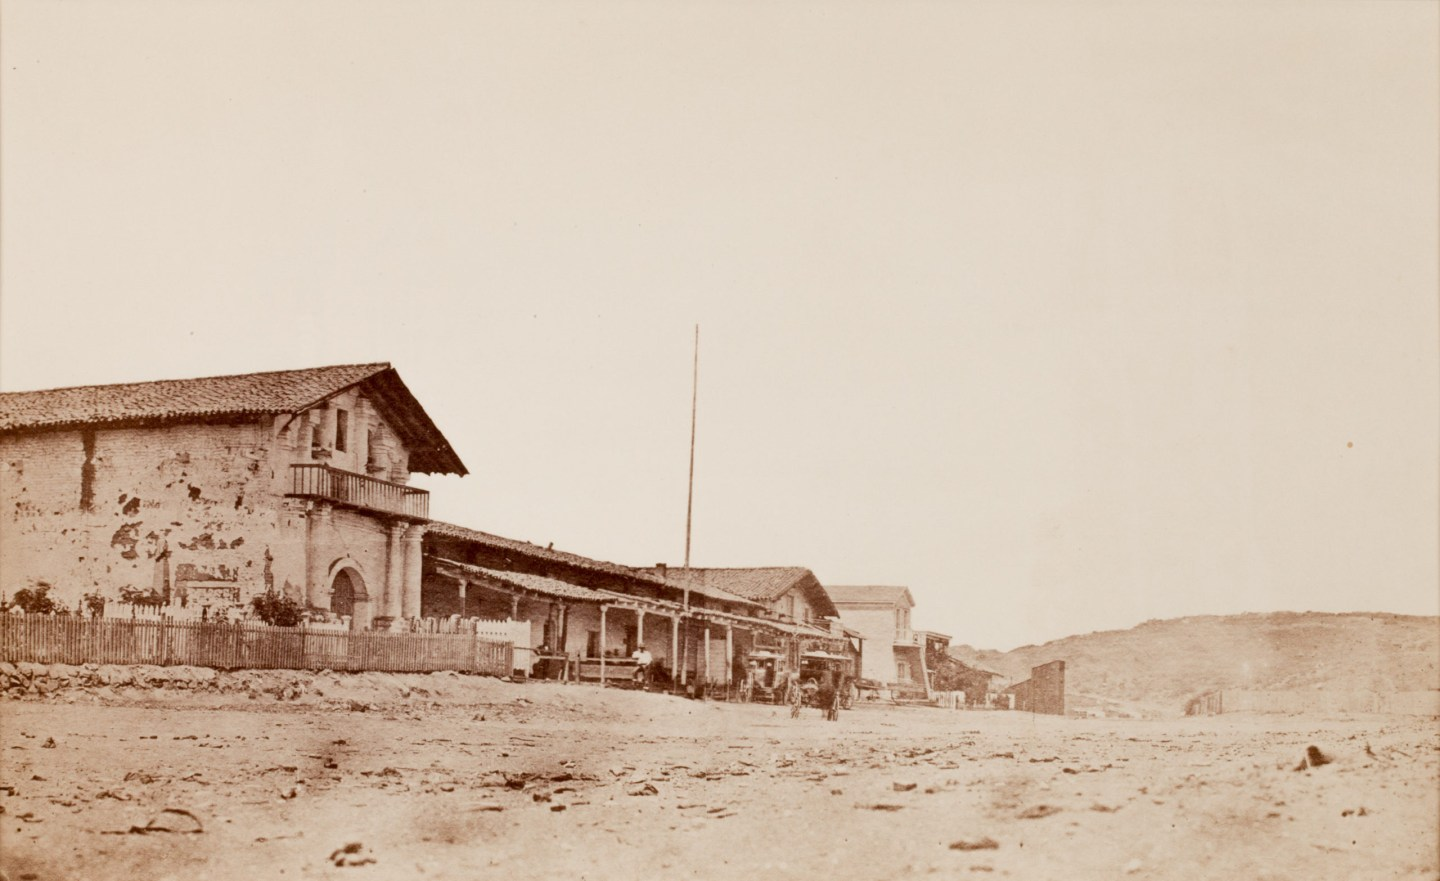 Ninteteenth century photograph of a cluster of buildings receding diagonally towards a hill in the background